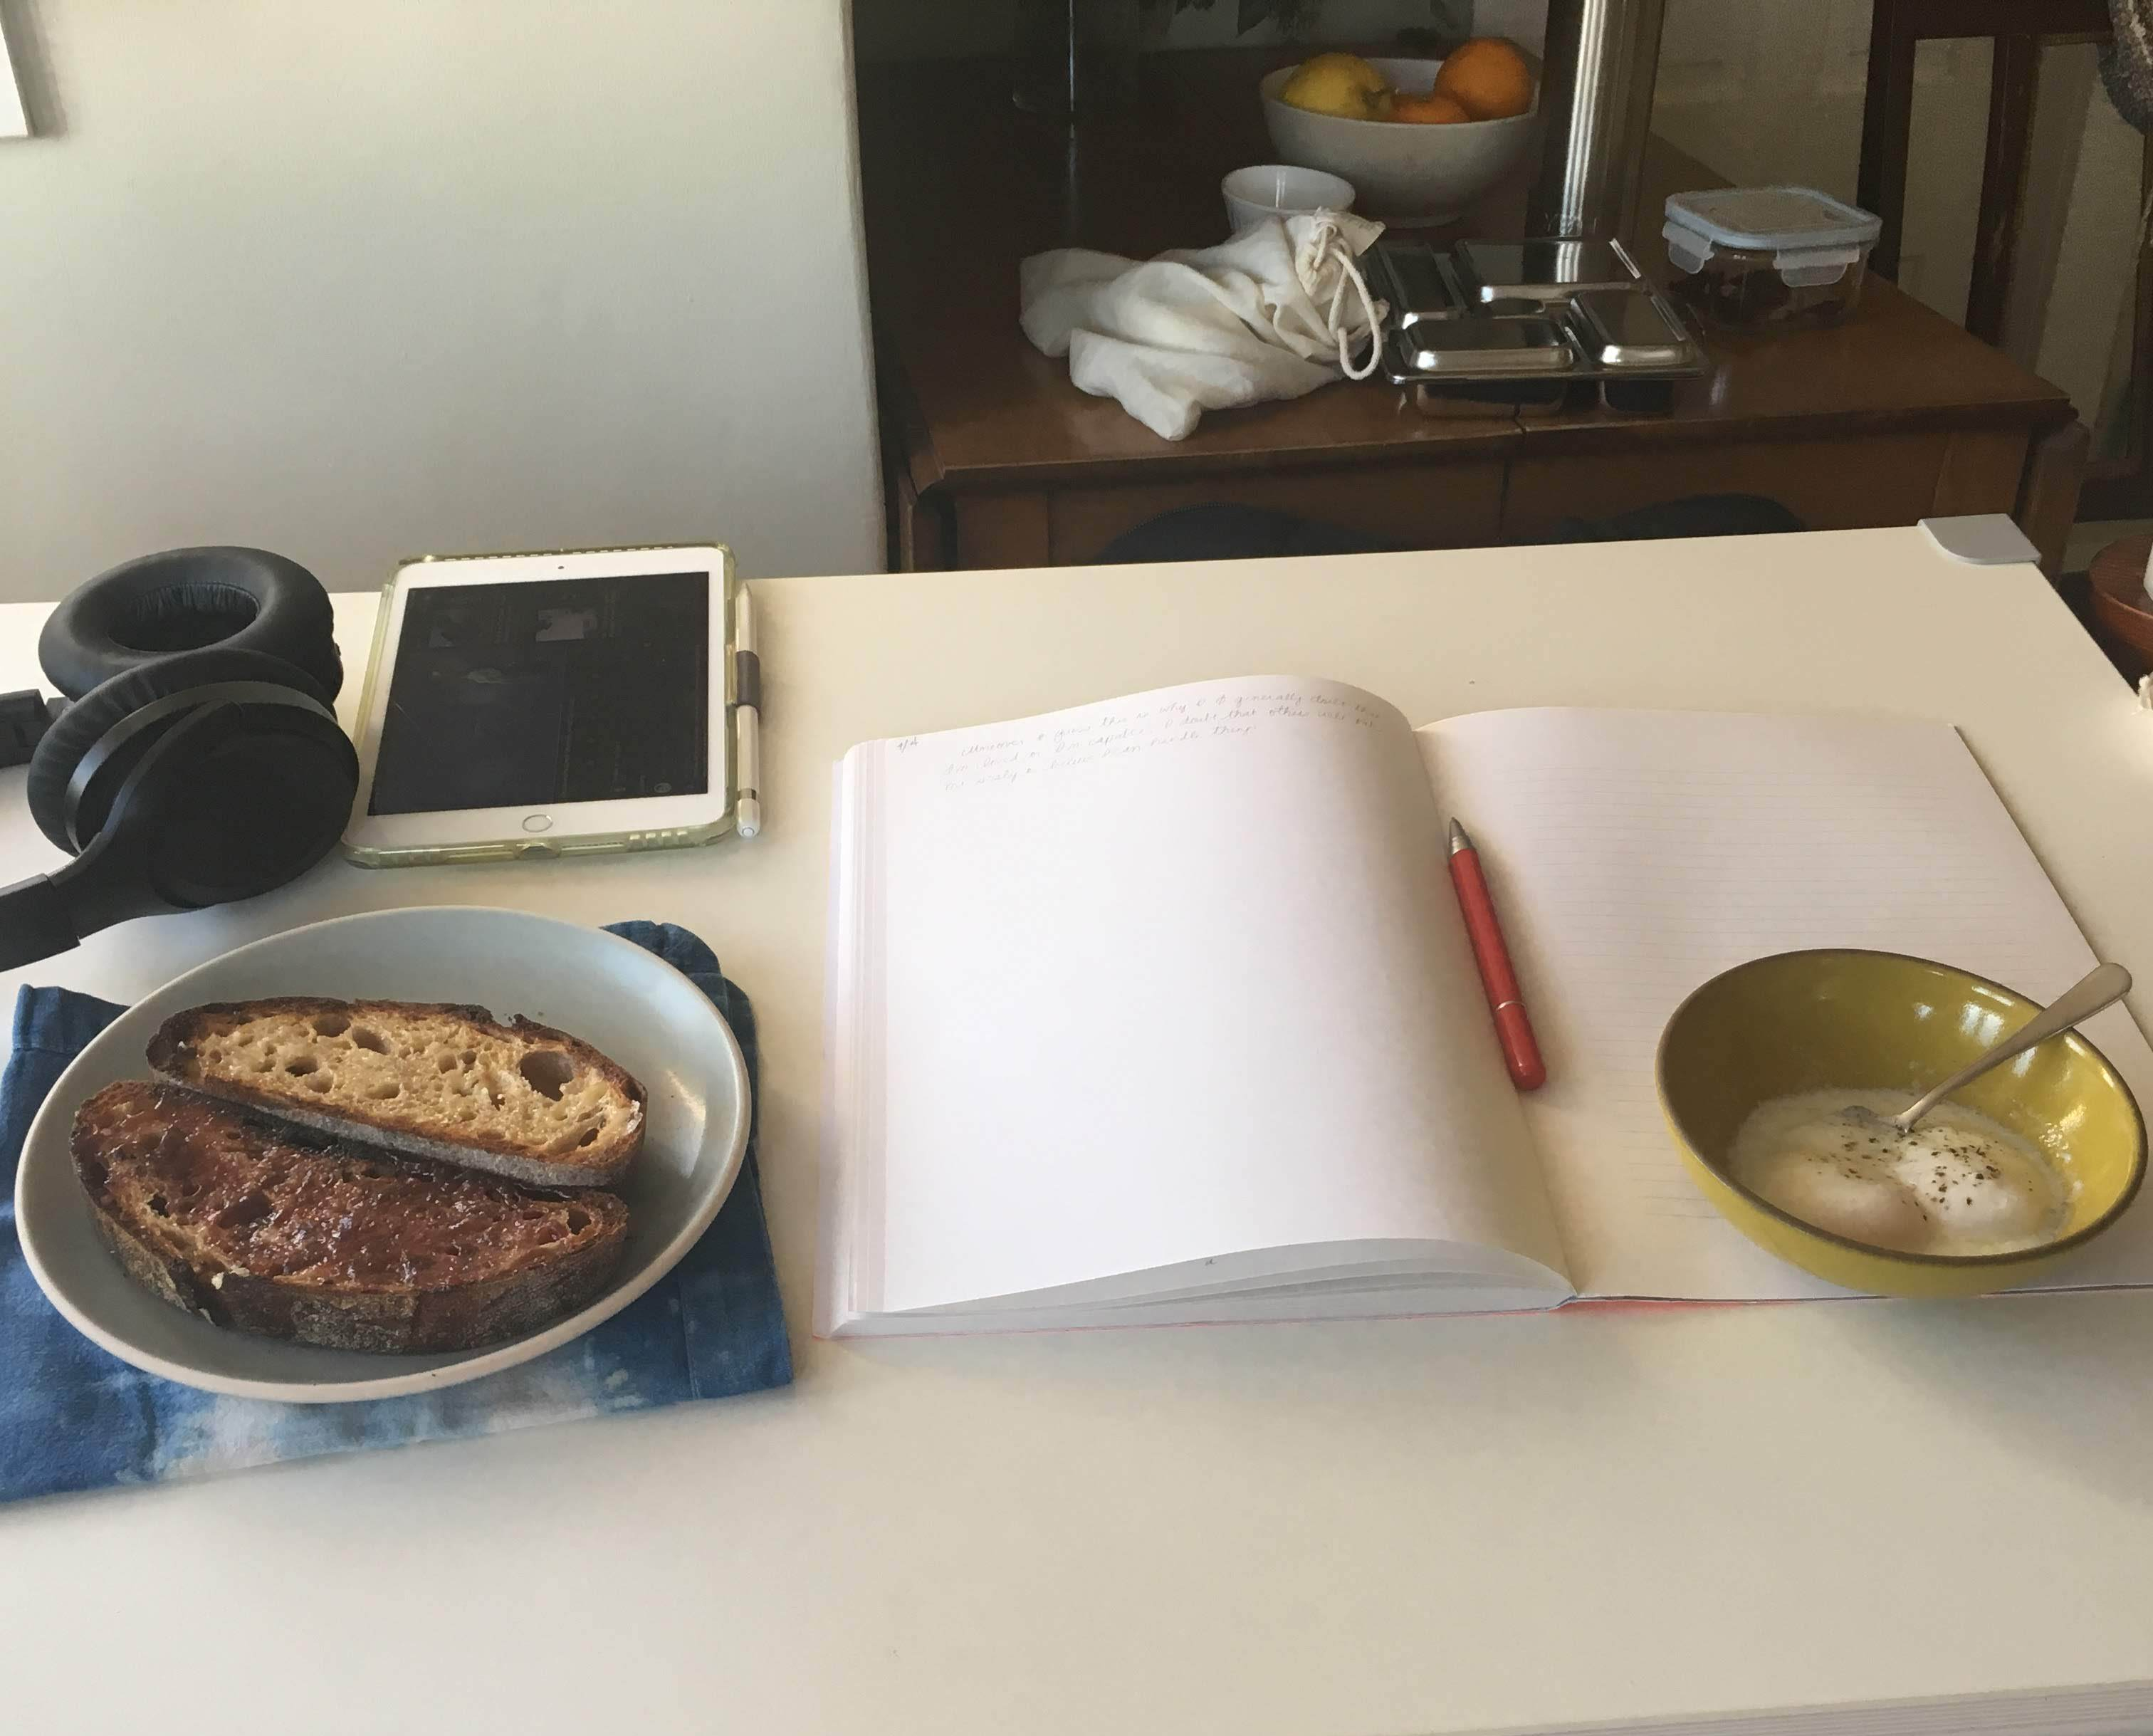 Headphones, tablet, breakfast, journal atop a desk